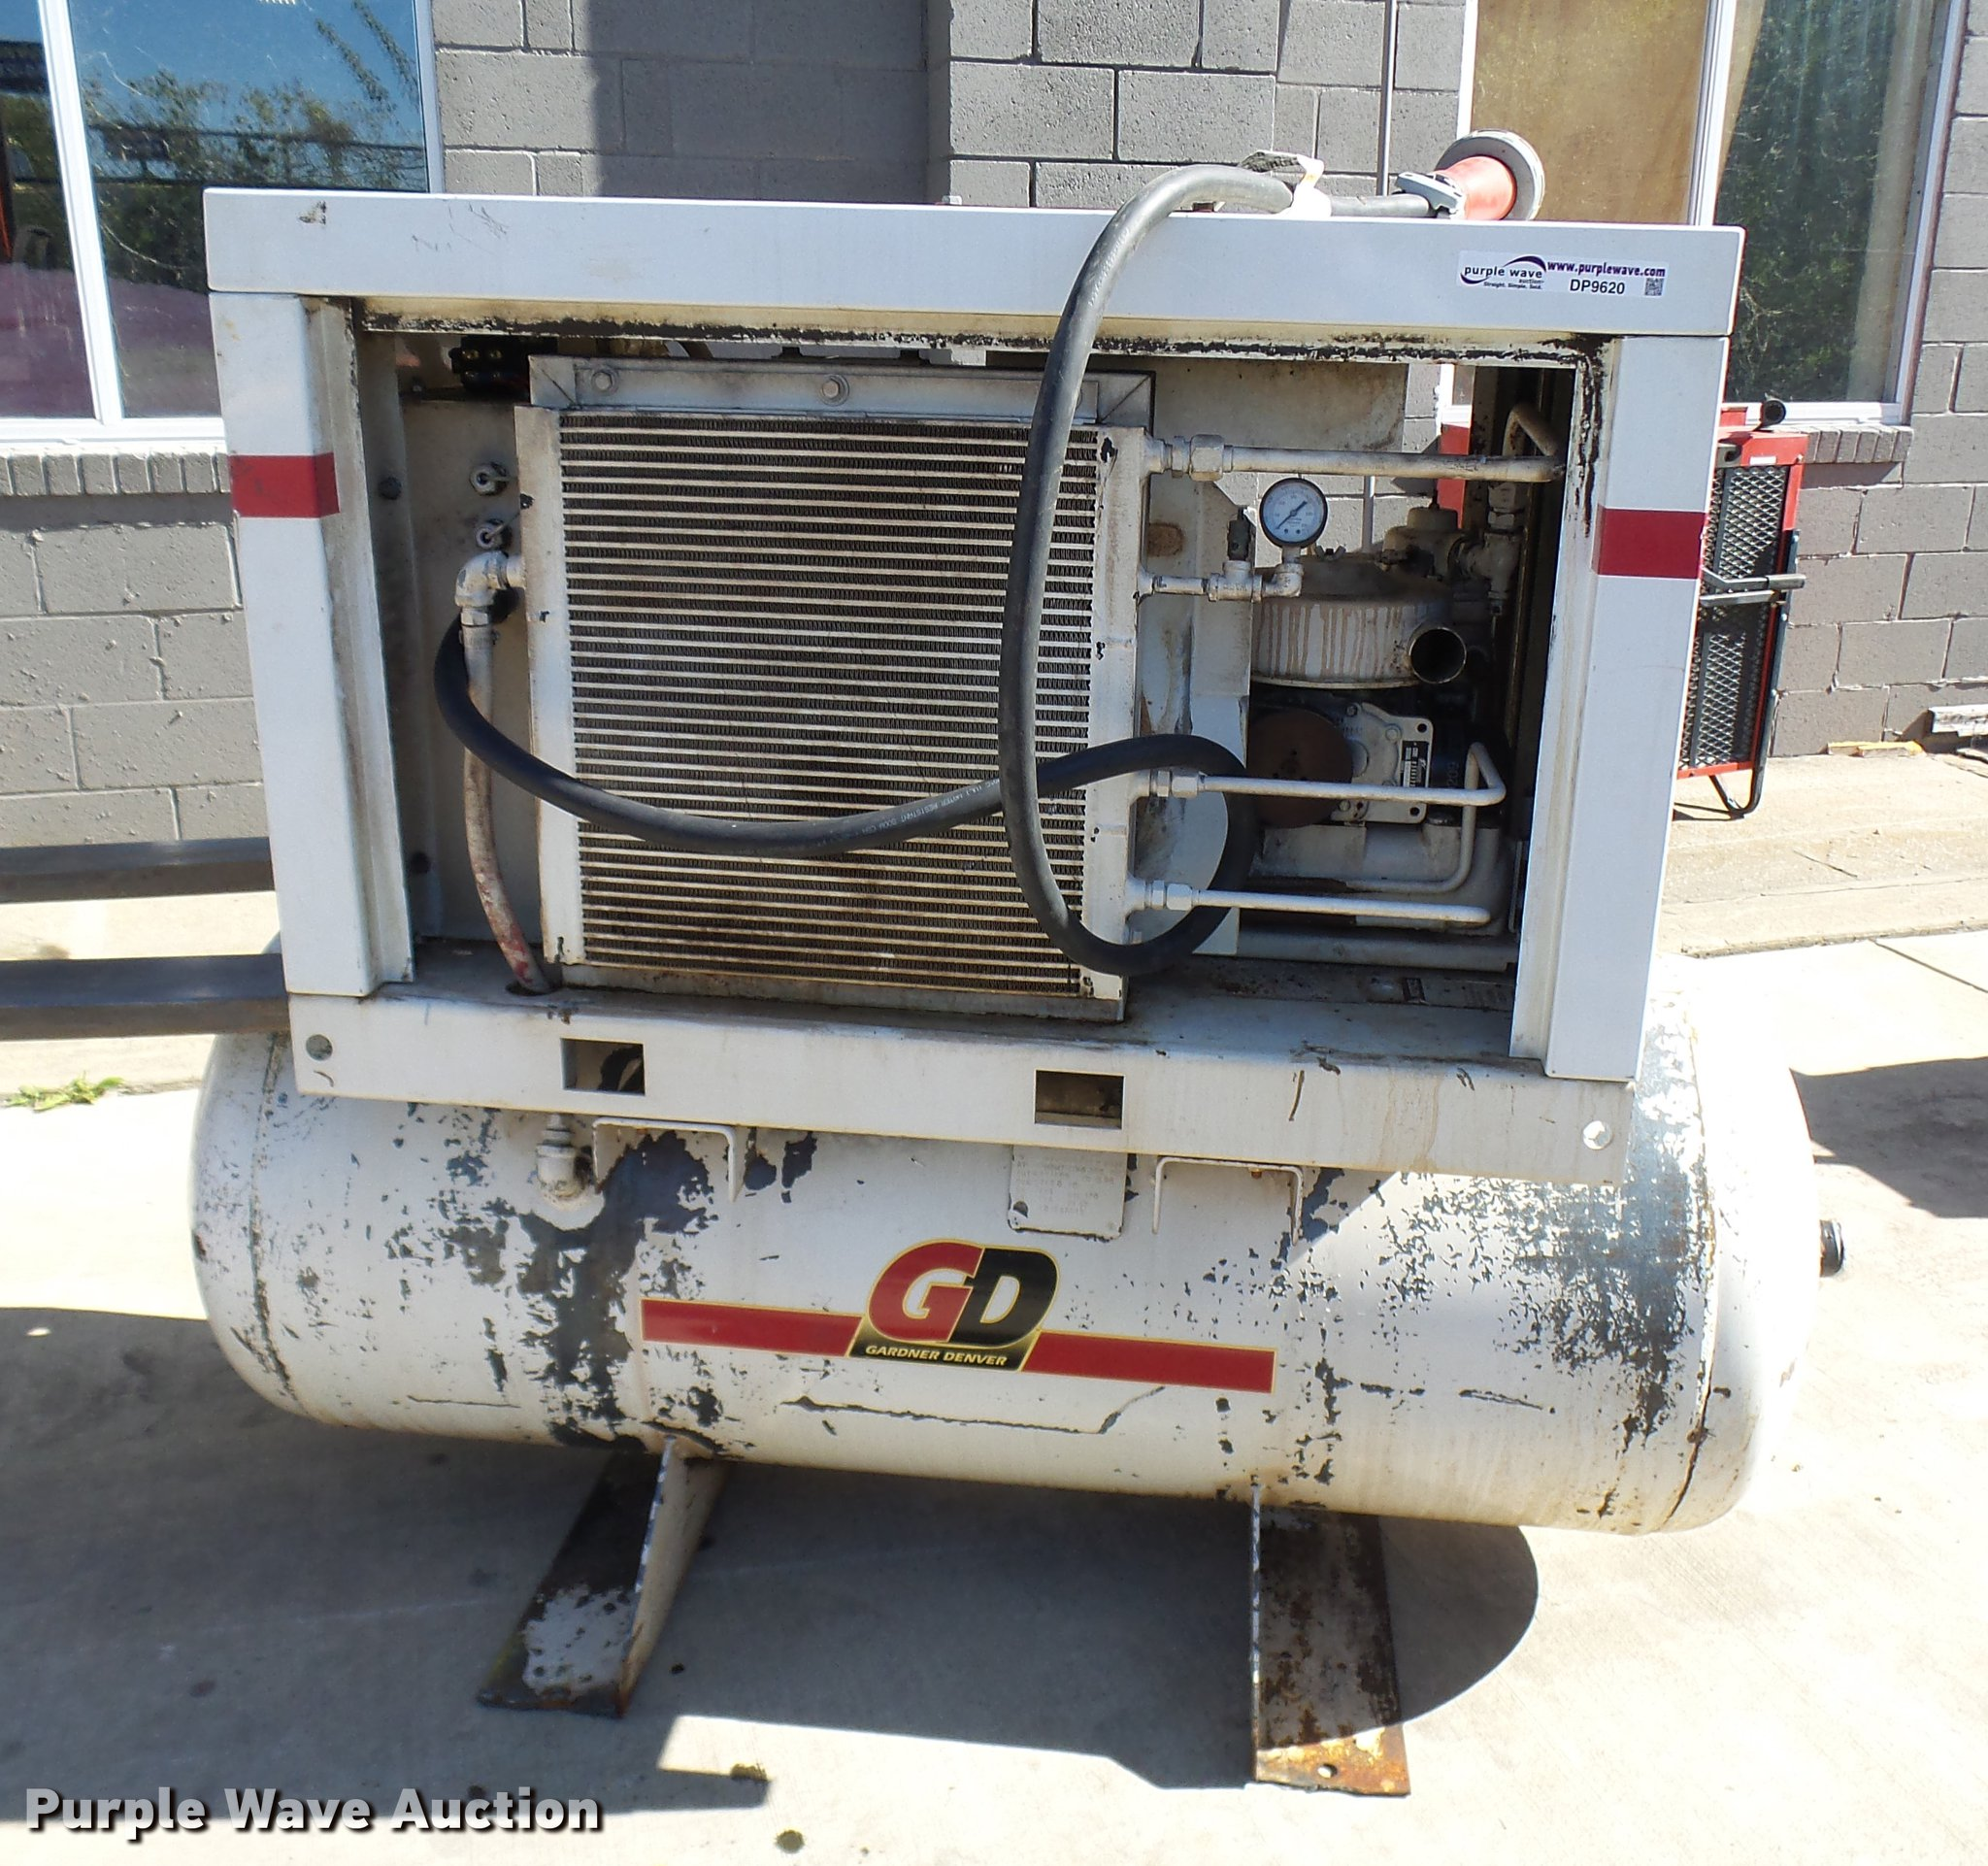 1999 Gardner Denver Eba99a Air Compressor Item Dp9620 So Motor Wiring Diagram Full Size In New Window